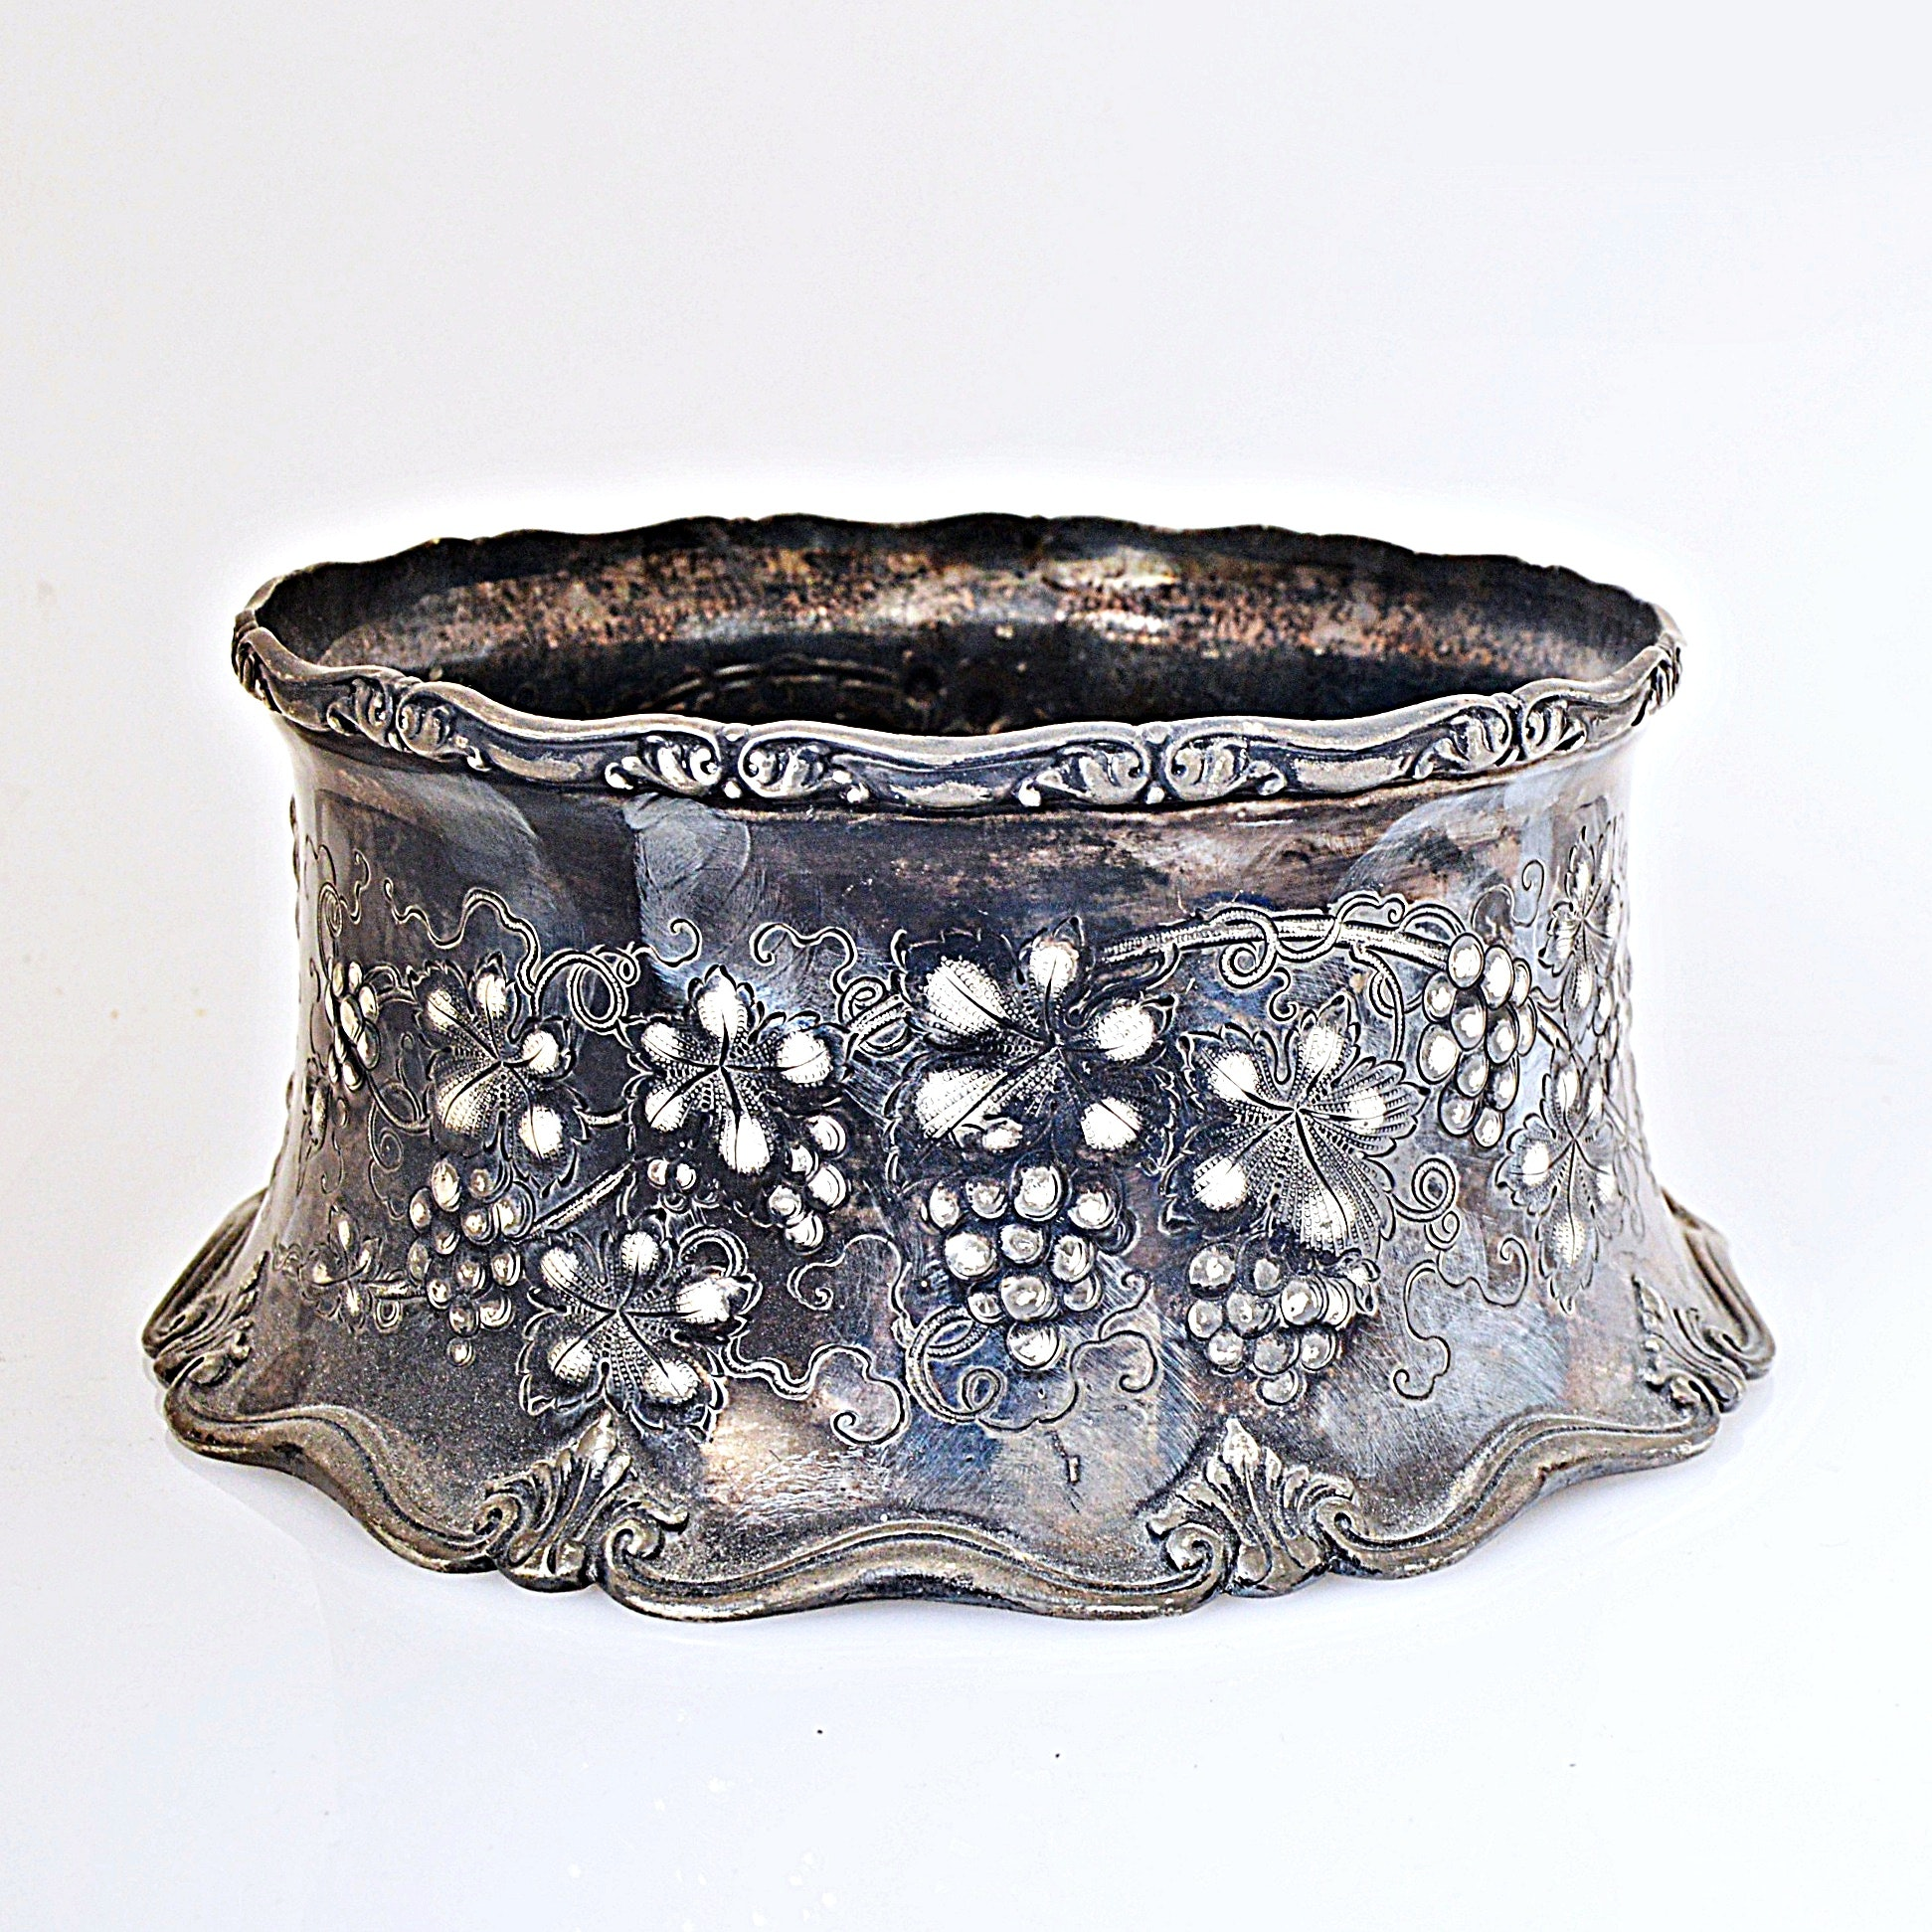 Homan Mfg. Co. Grapevine Accented Silver-Plated Centerpiece Bowl